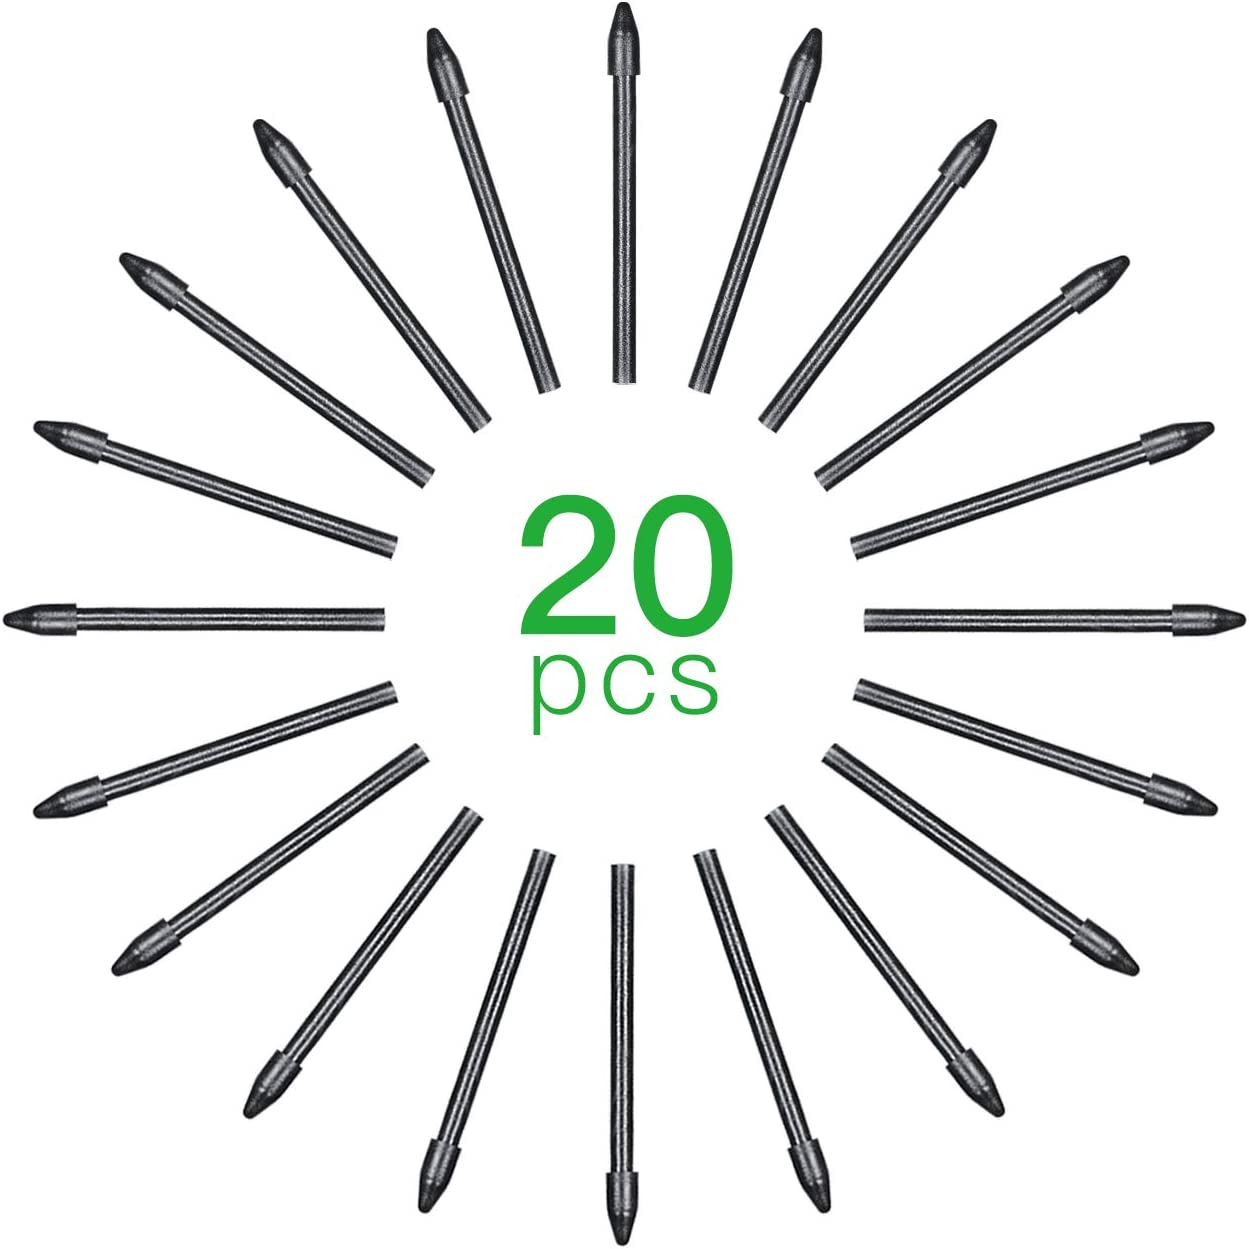 Entweg Pen Tips,20pcs Replacement Nibs Pen Tips Compatible with All Graphic Monitor Drawing Tablet Battery-Free Stylus Black